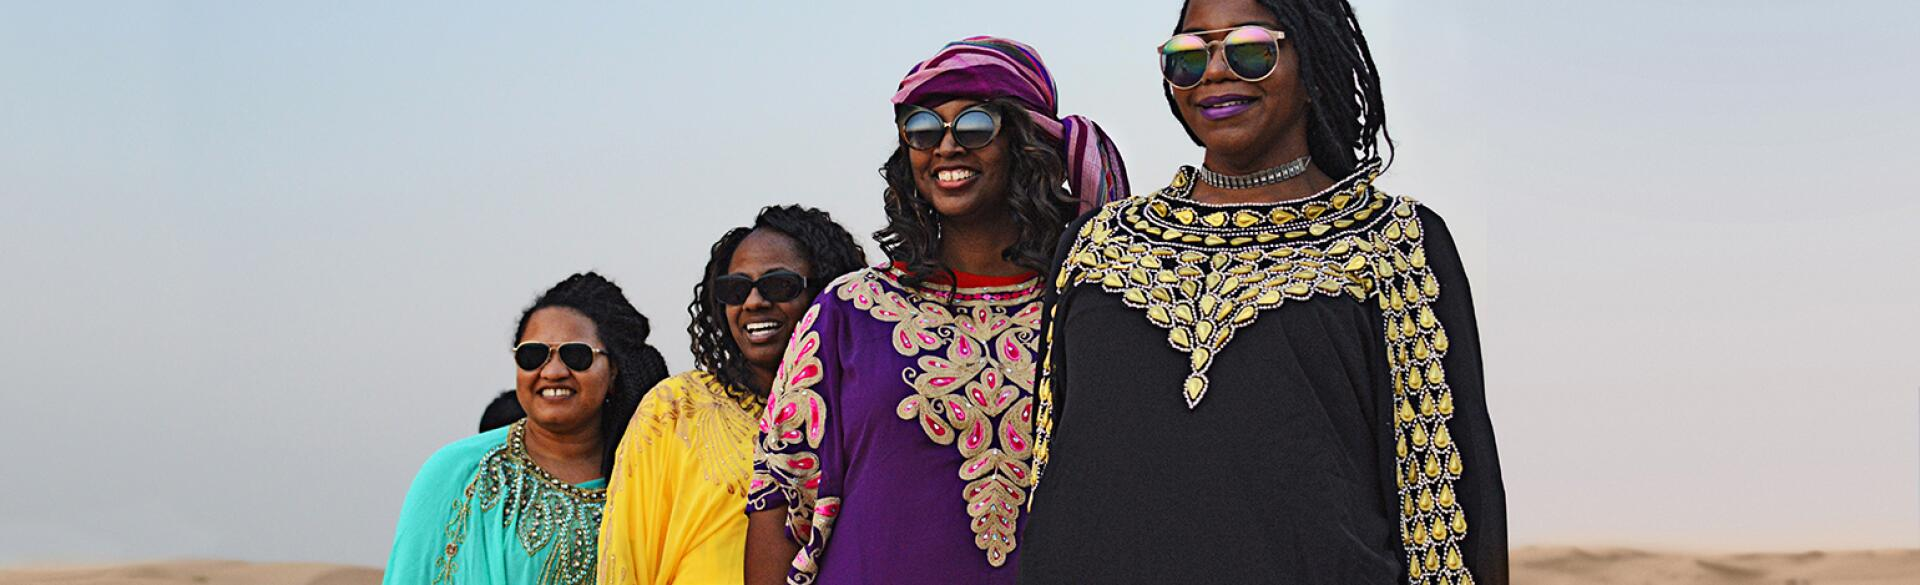 A group of four women stand in the UAE desert near Abu Dhabi.